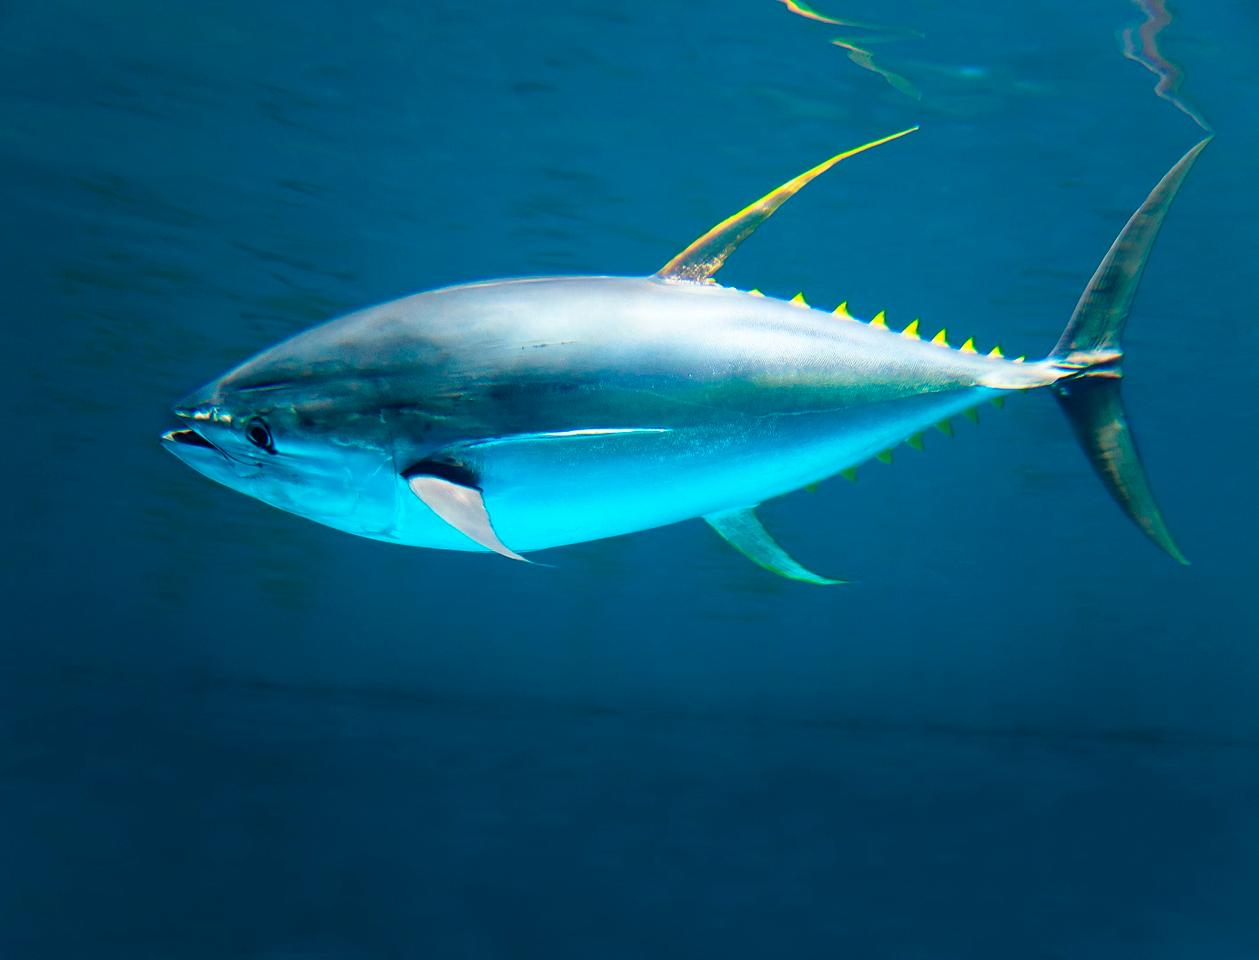 The team studied tuna, such as the yellowfin, as part of their study